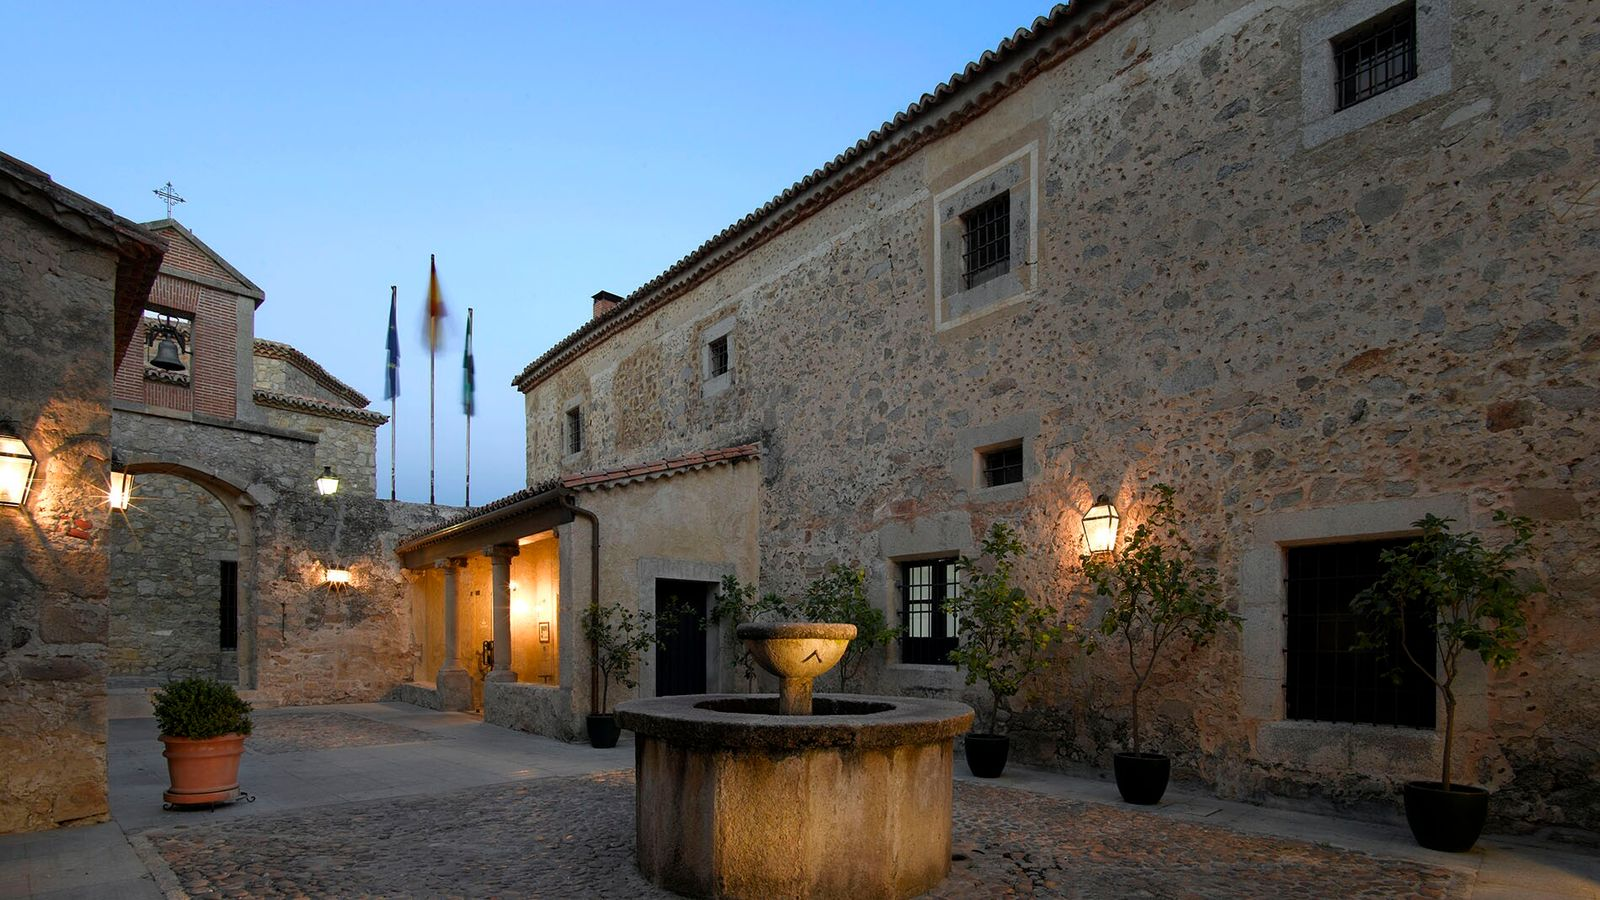 The Parador de Trujillo slots cleanly into the stone structure of the former Santa Clara Convent ...